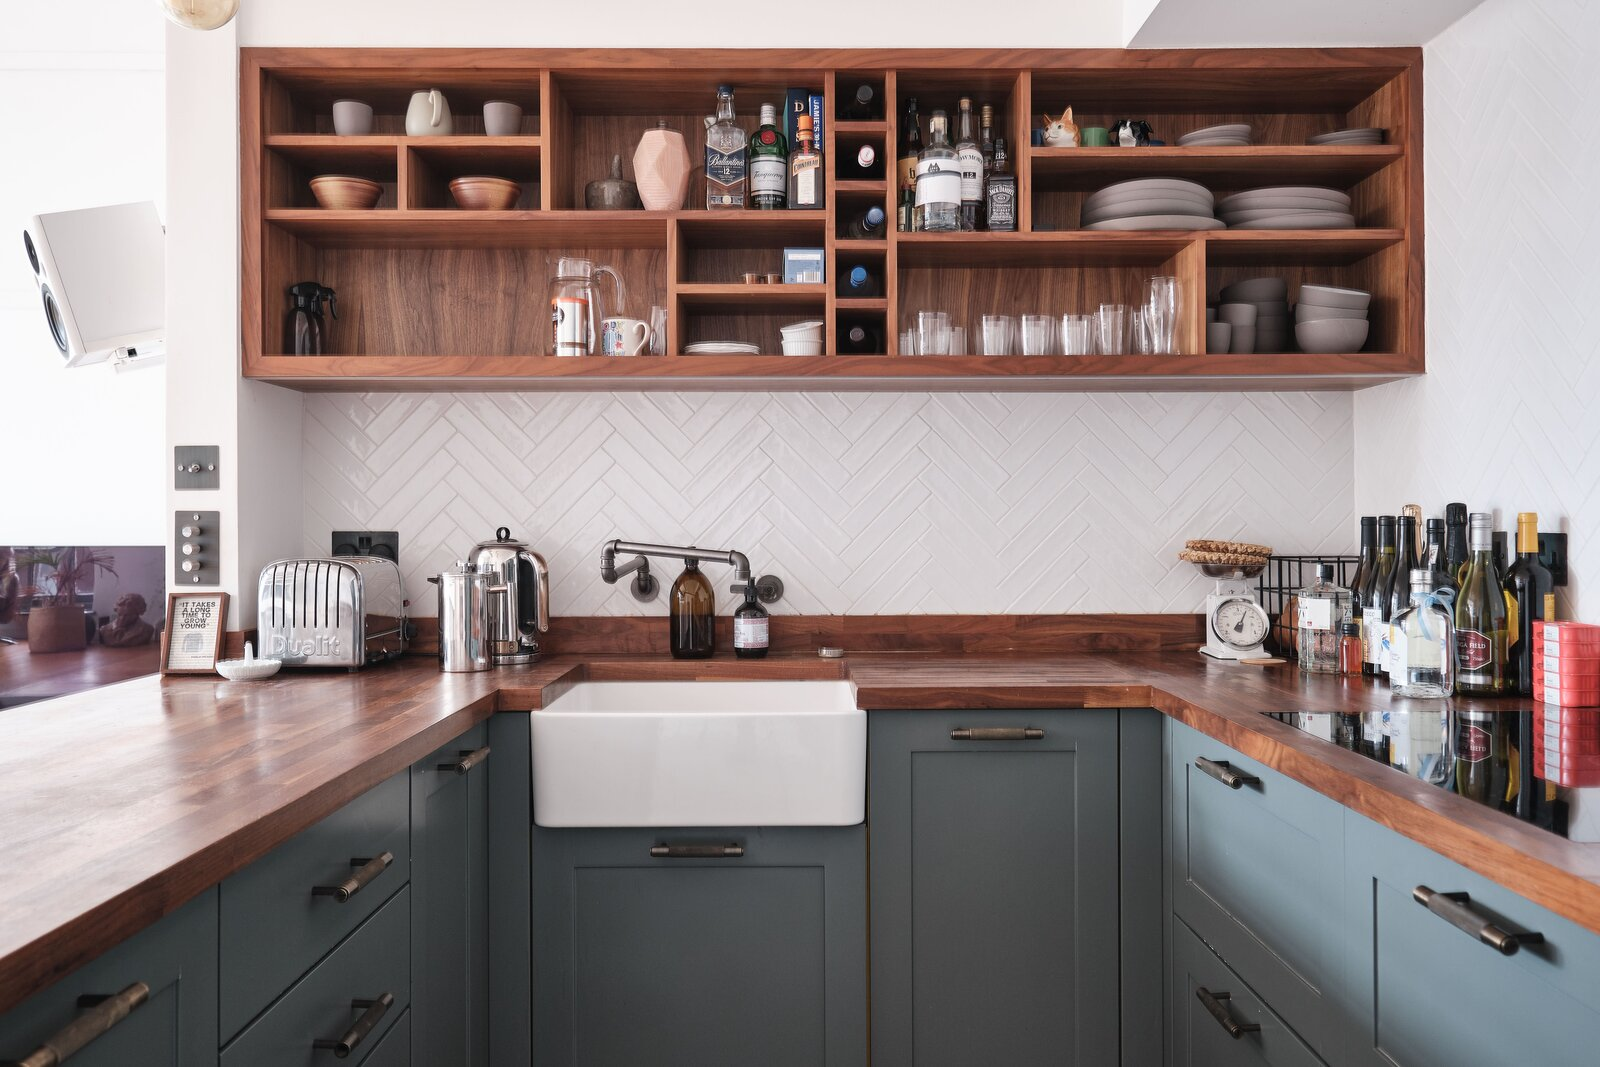 Kitchen, Colorful Cabinet, Wood Counter, Open Cabinet, and Wood Cabinet Colored lower cabinetry contrast with custom-made open shelving and butcher block counters.  Photo 8 of 13 in For £1.2M, Snag This Spacious London Flat Inside a Converted Victorian Schoolhouse